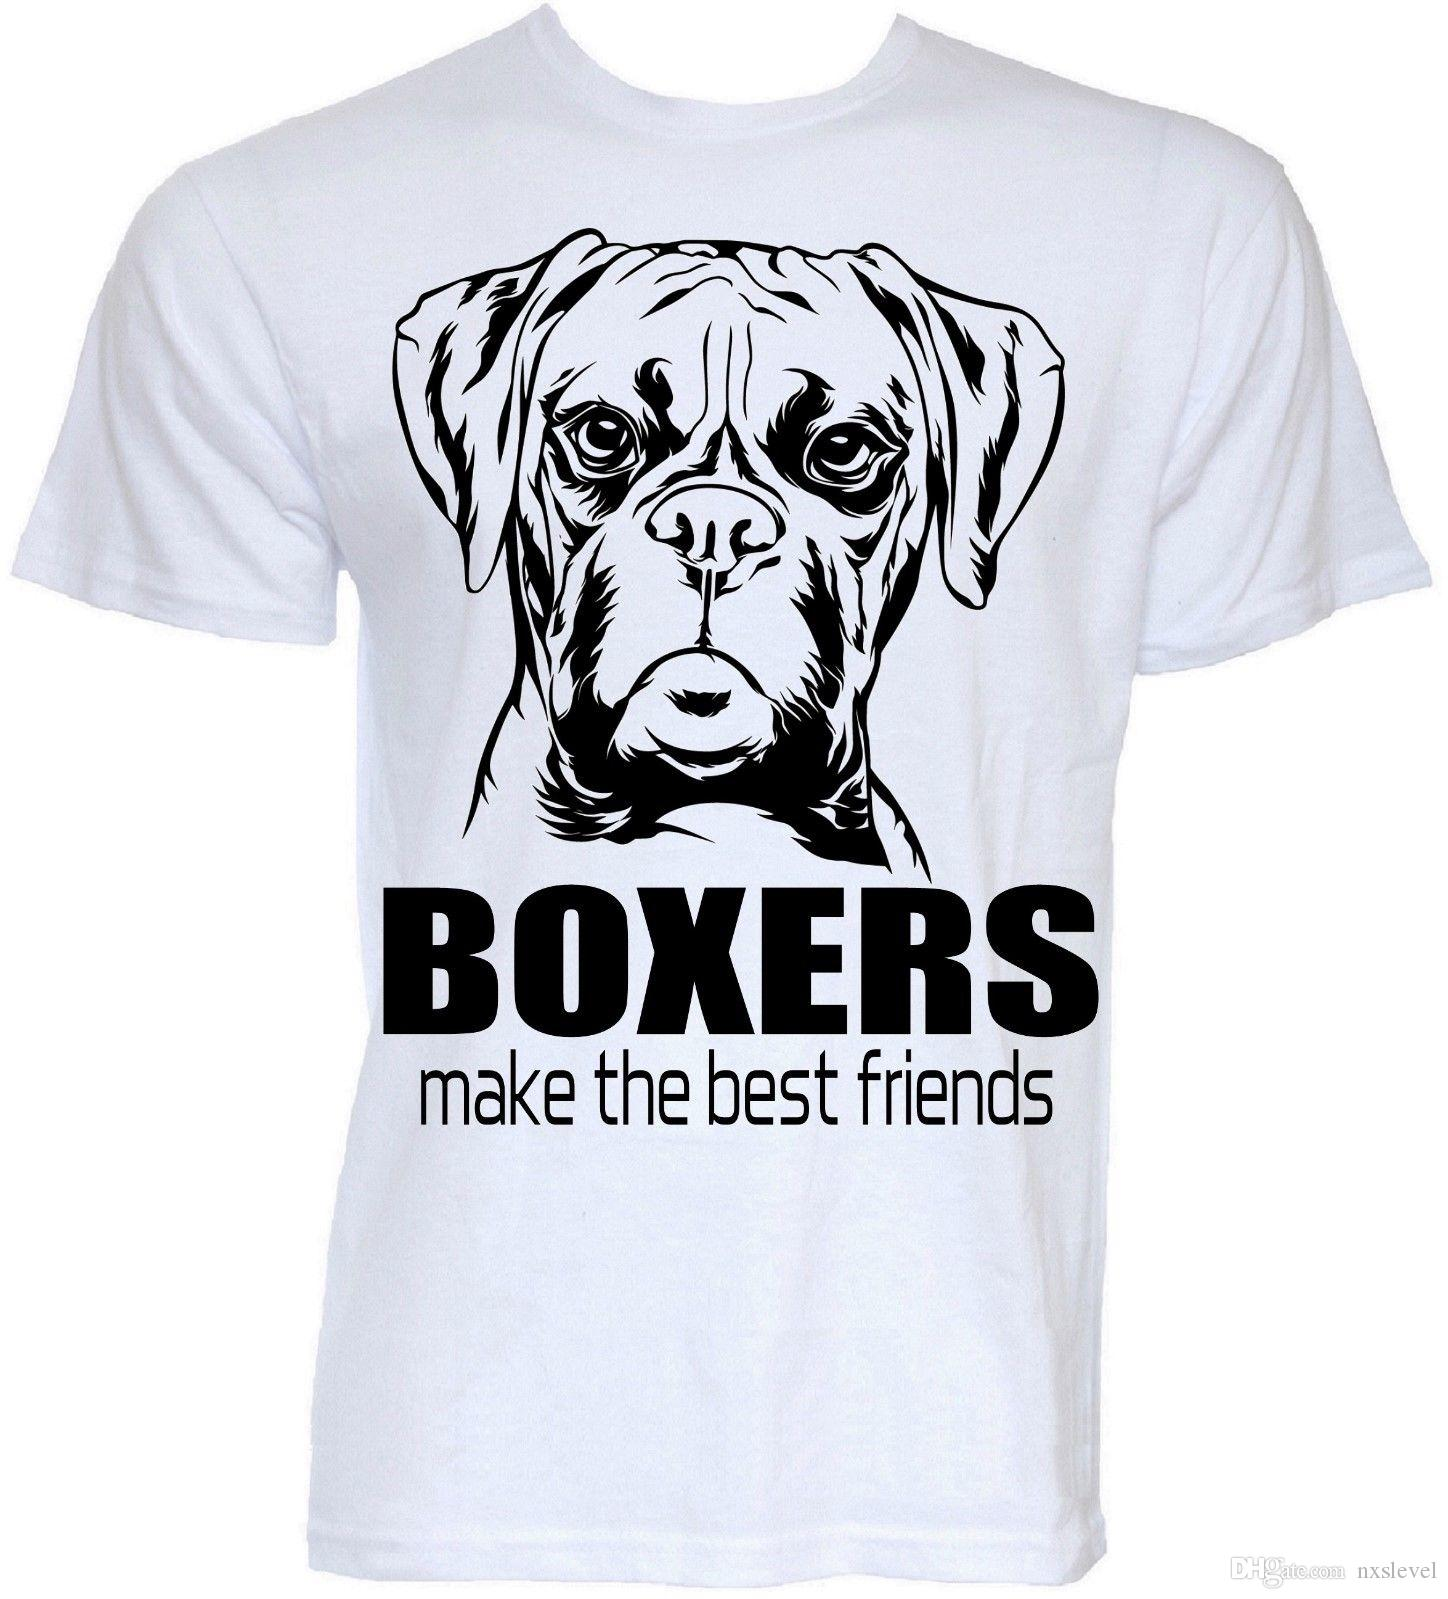 293b1dcc2582 Boxer Dogs T Shirts Mens Funny Cool Novelty Pet Owner Slogan Joke Gifts T  Shirt T Sirt T Shirt Sites From Nxslevel